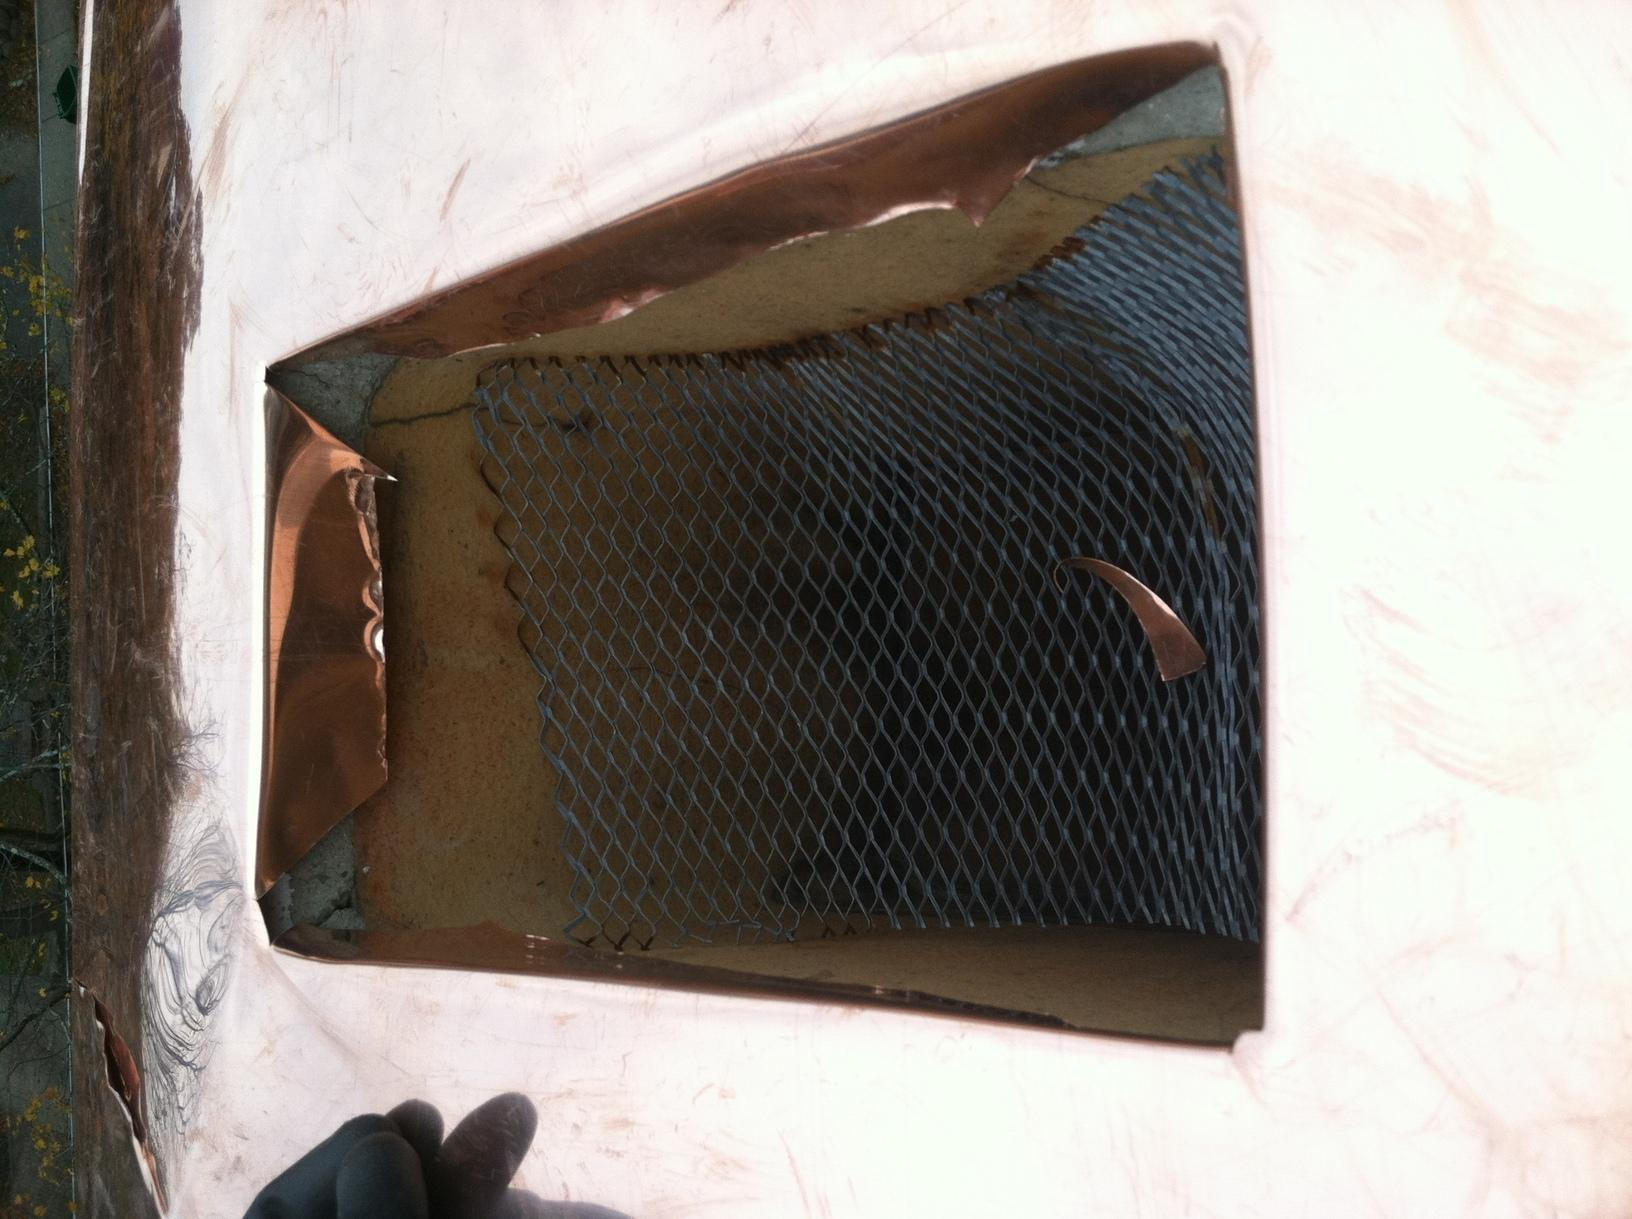 Chimney Repair Copper Chimney Cap On A Stone Chimney In